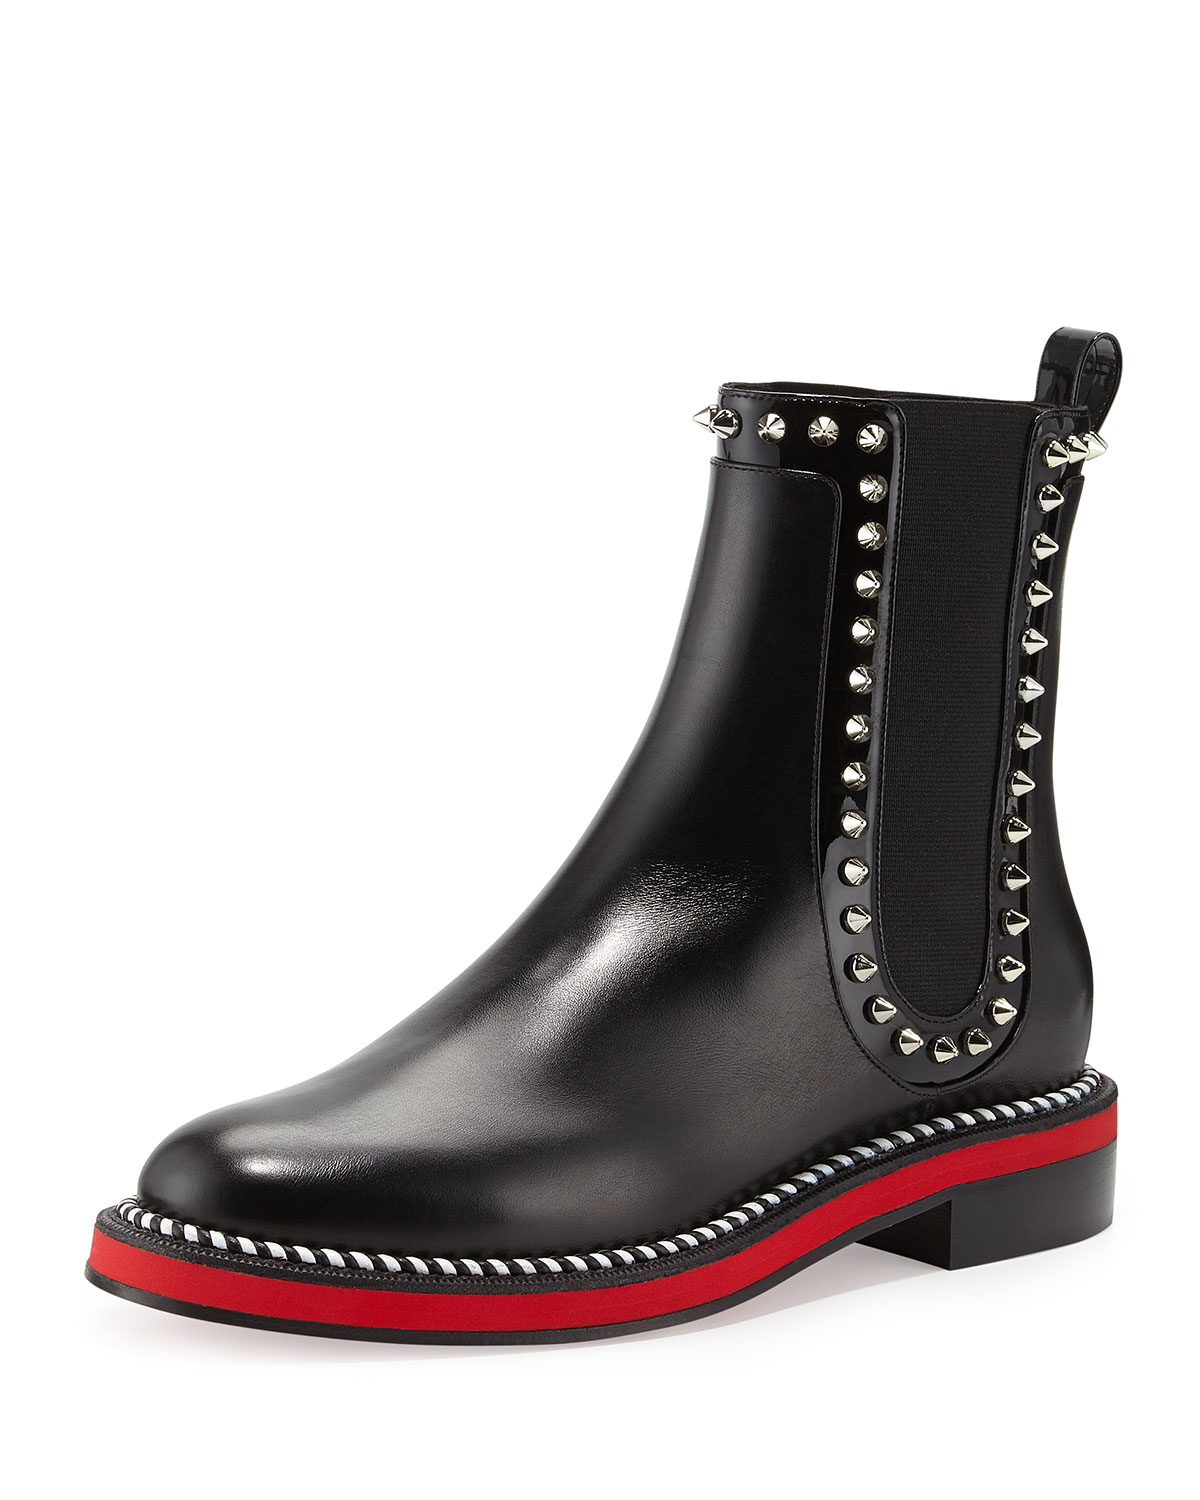 e3091ee3fbdb Lyst - Christian Louboutin Nothing Hill Red Sole Boot in Black